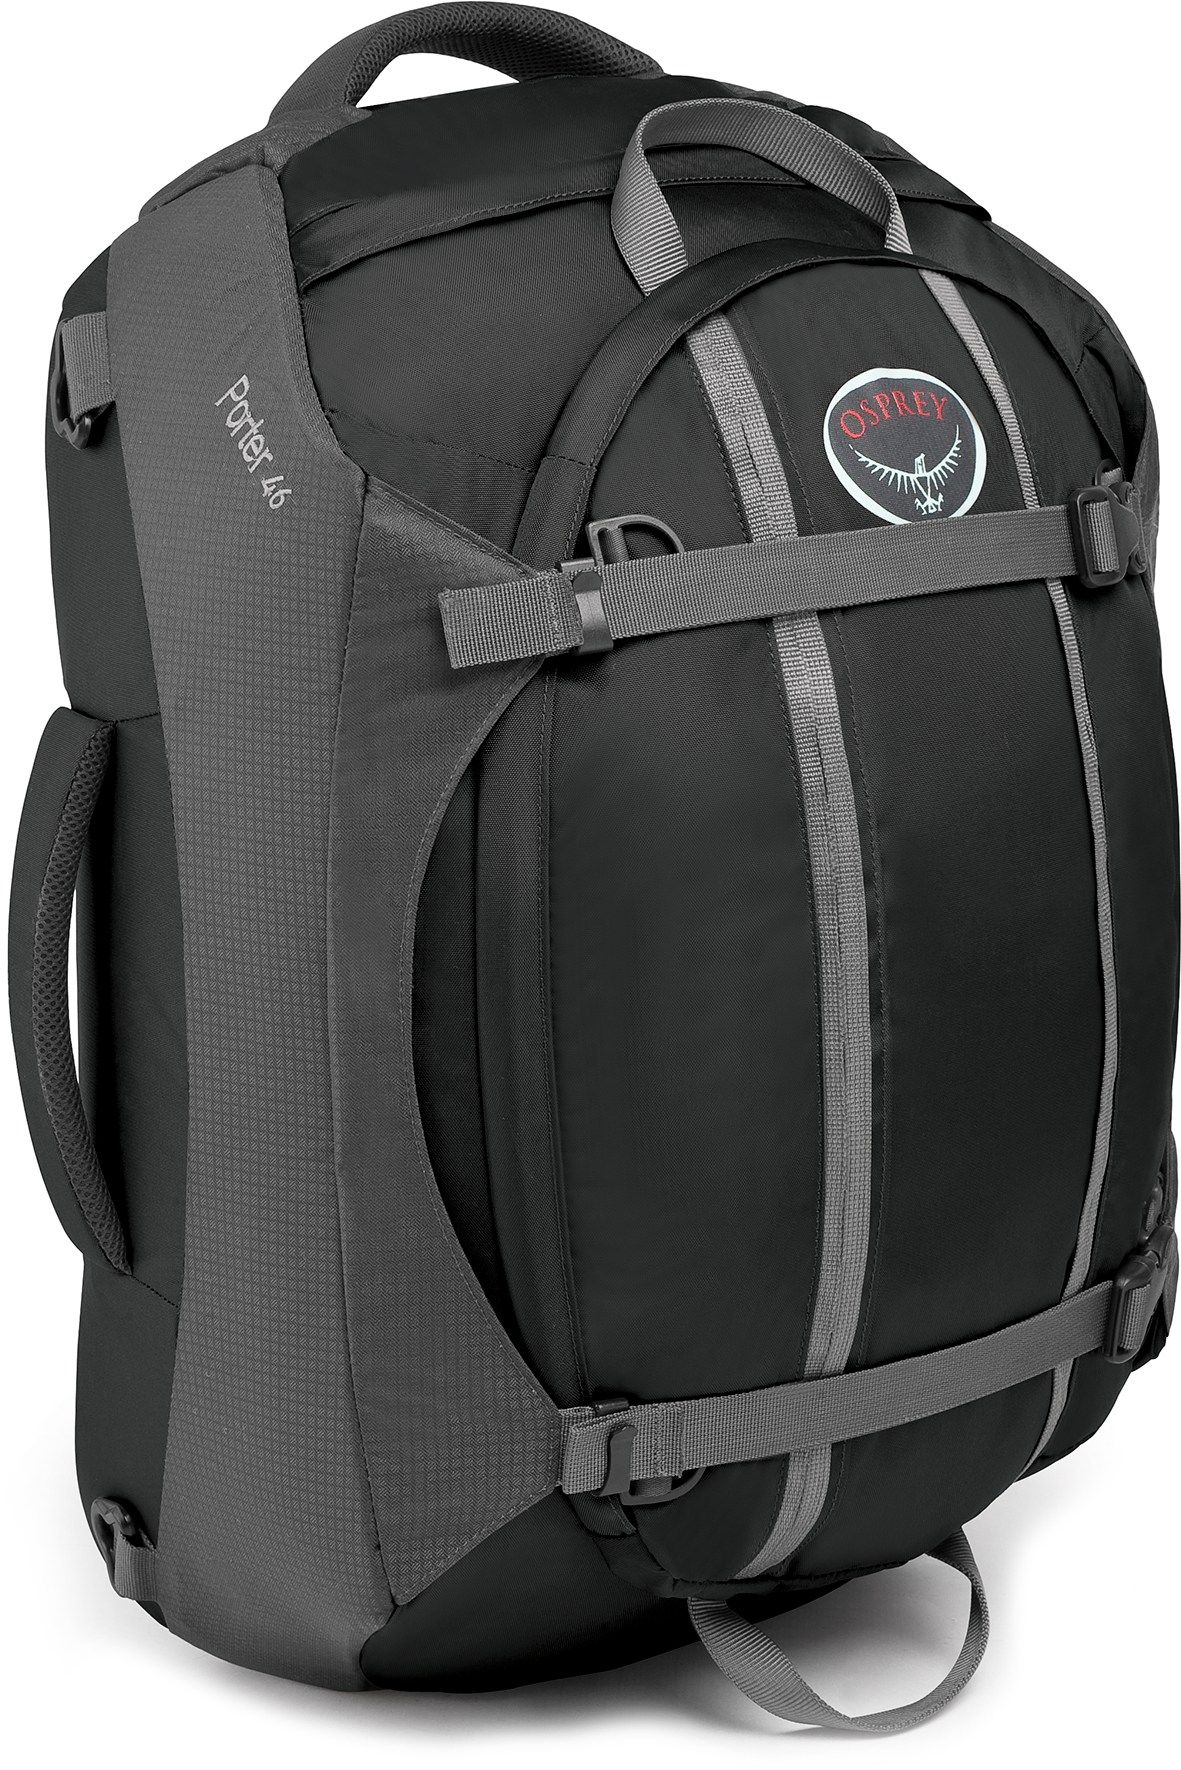 Osprey Porter 46 Backpack | Backpacking Europe | Pinterest | Bags ...